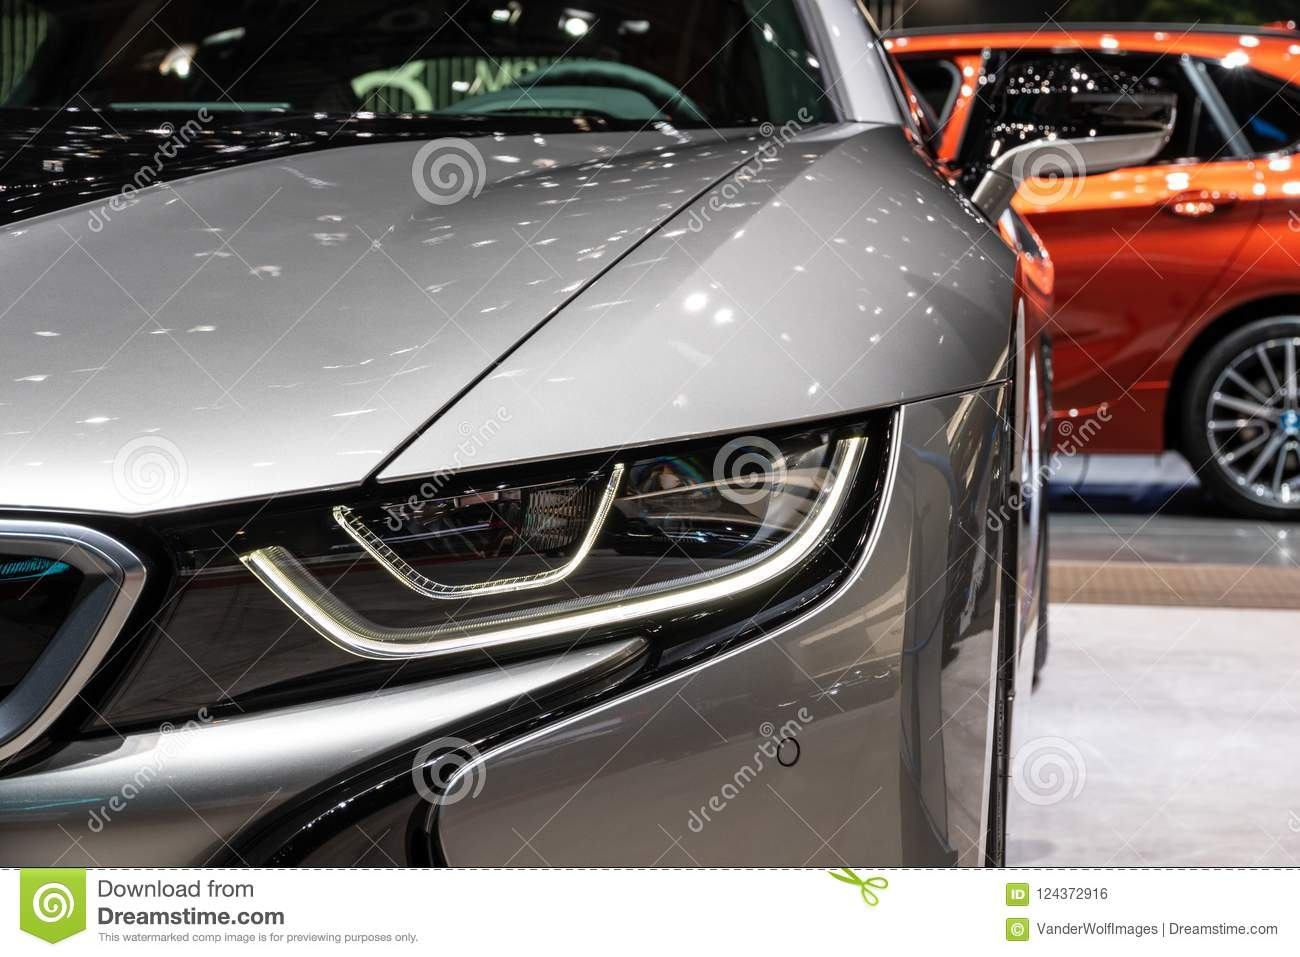 Bmw I8 Coupe Electric Sports Car Editorial Photo Image Of Design